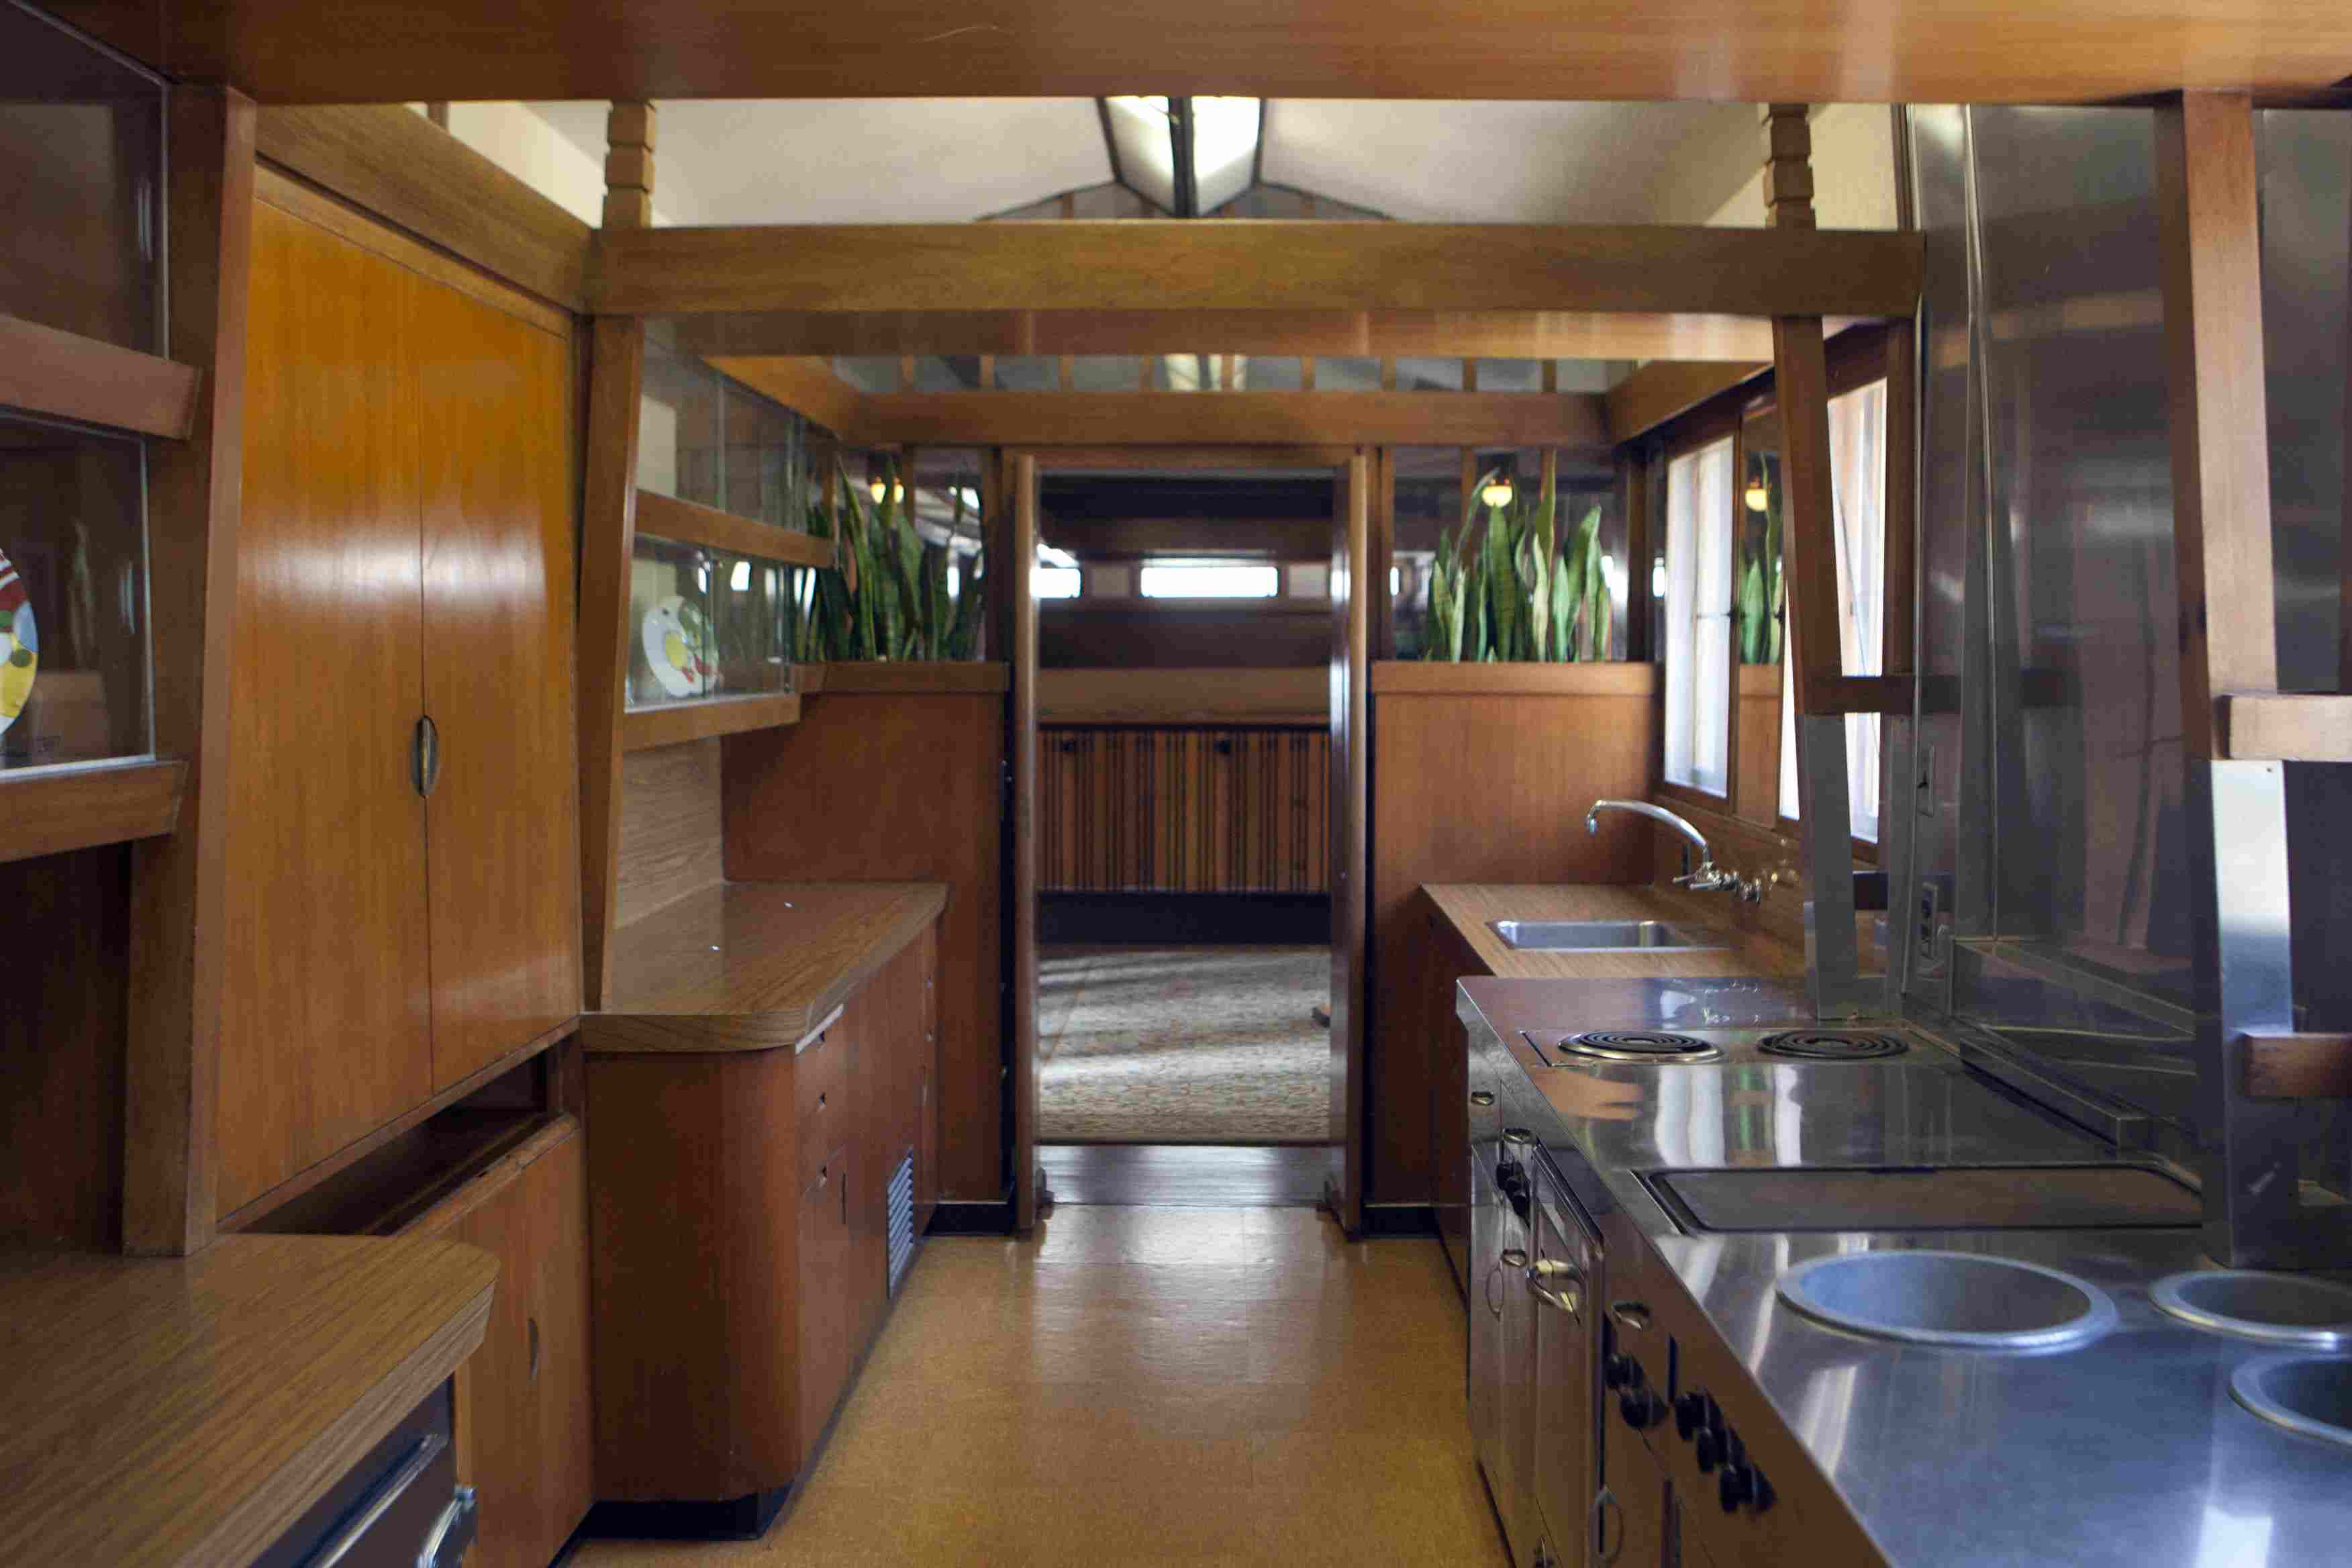 Kitchen of Frank Lloyd Wright's Hollyhock House, 1921, built for Aline Barnsdall in southern California